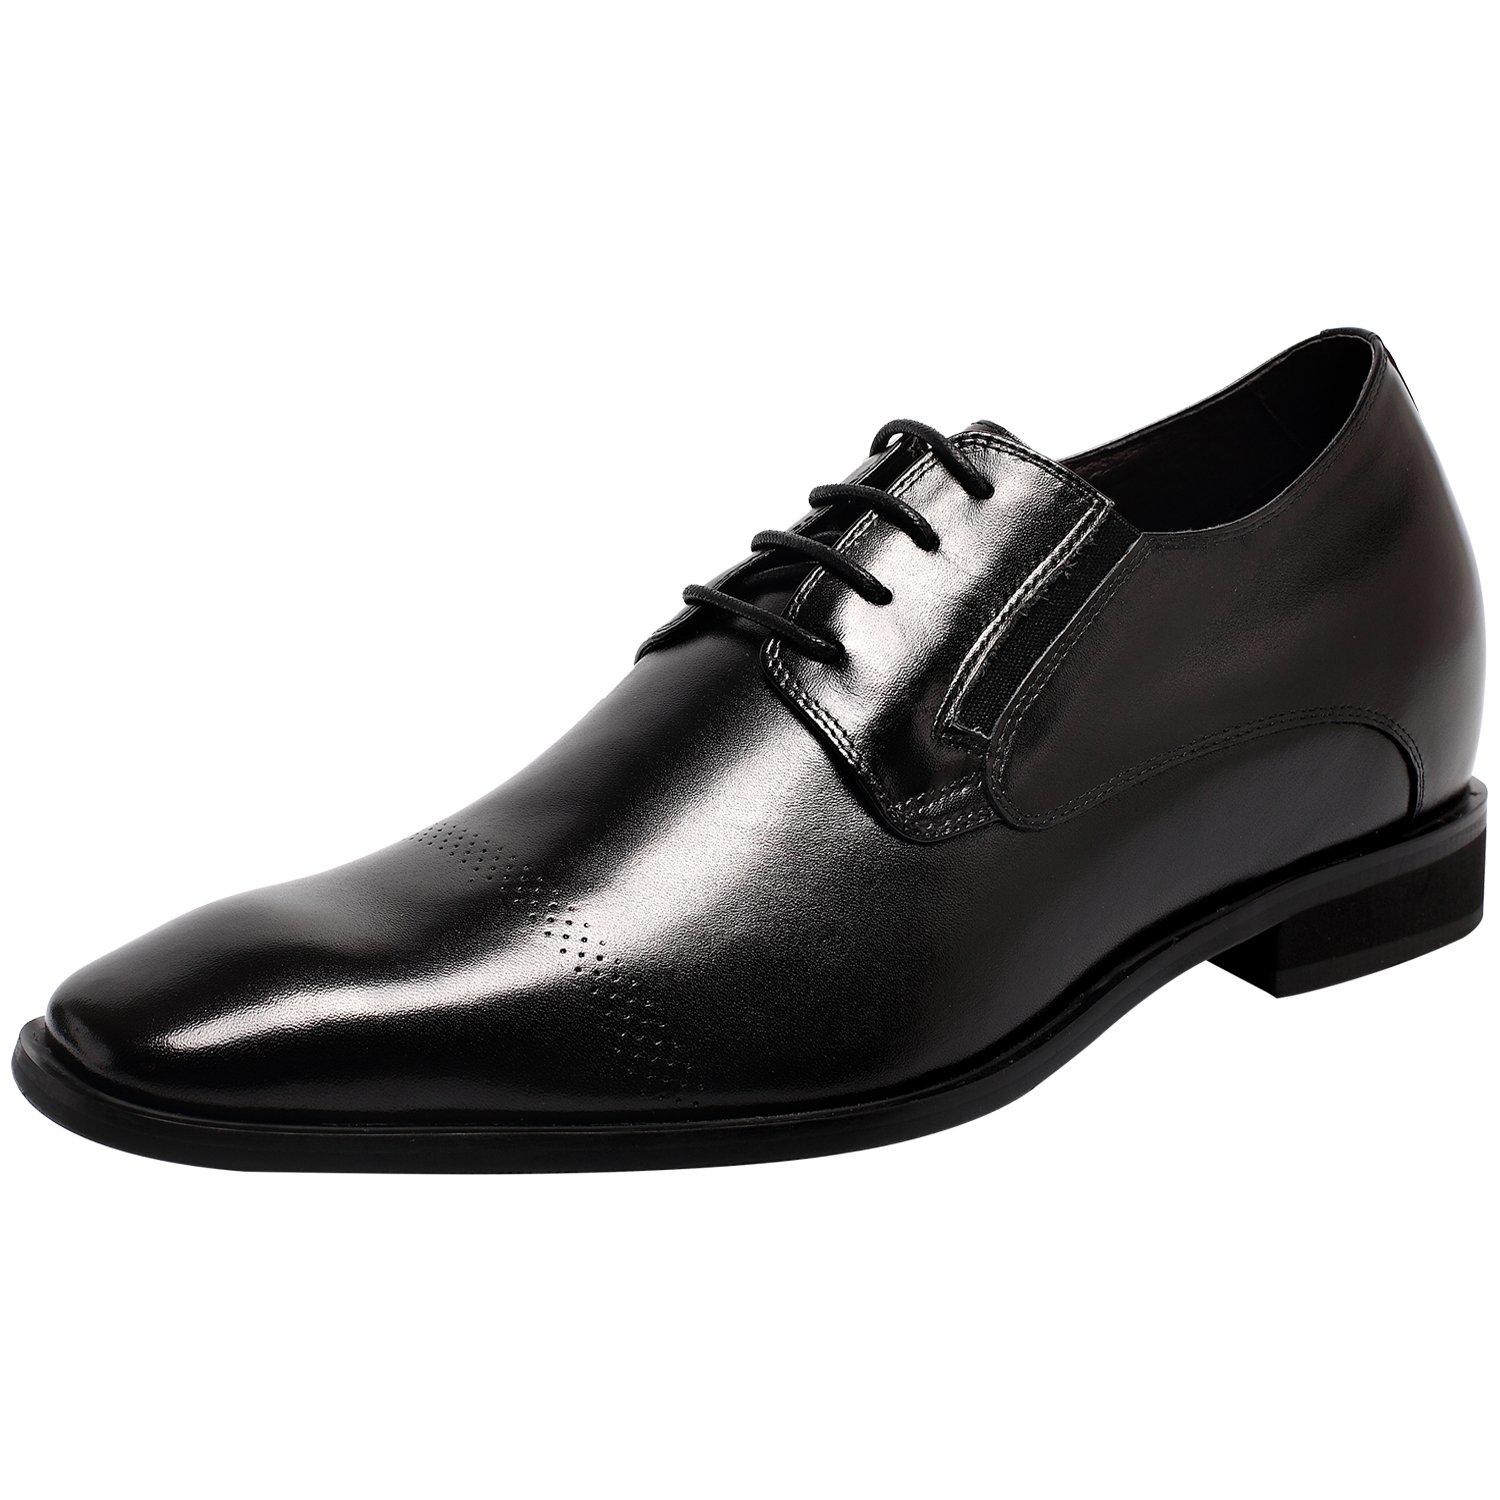 CHAMARIPA Elevator Dress Lace Oxford Brogues Shoes Height Increasing Shoes 2.76'' Taller US 10